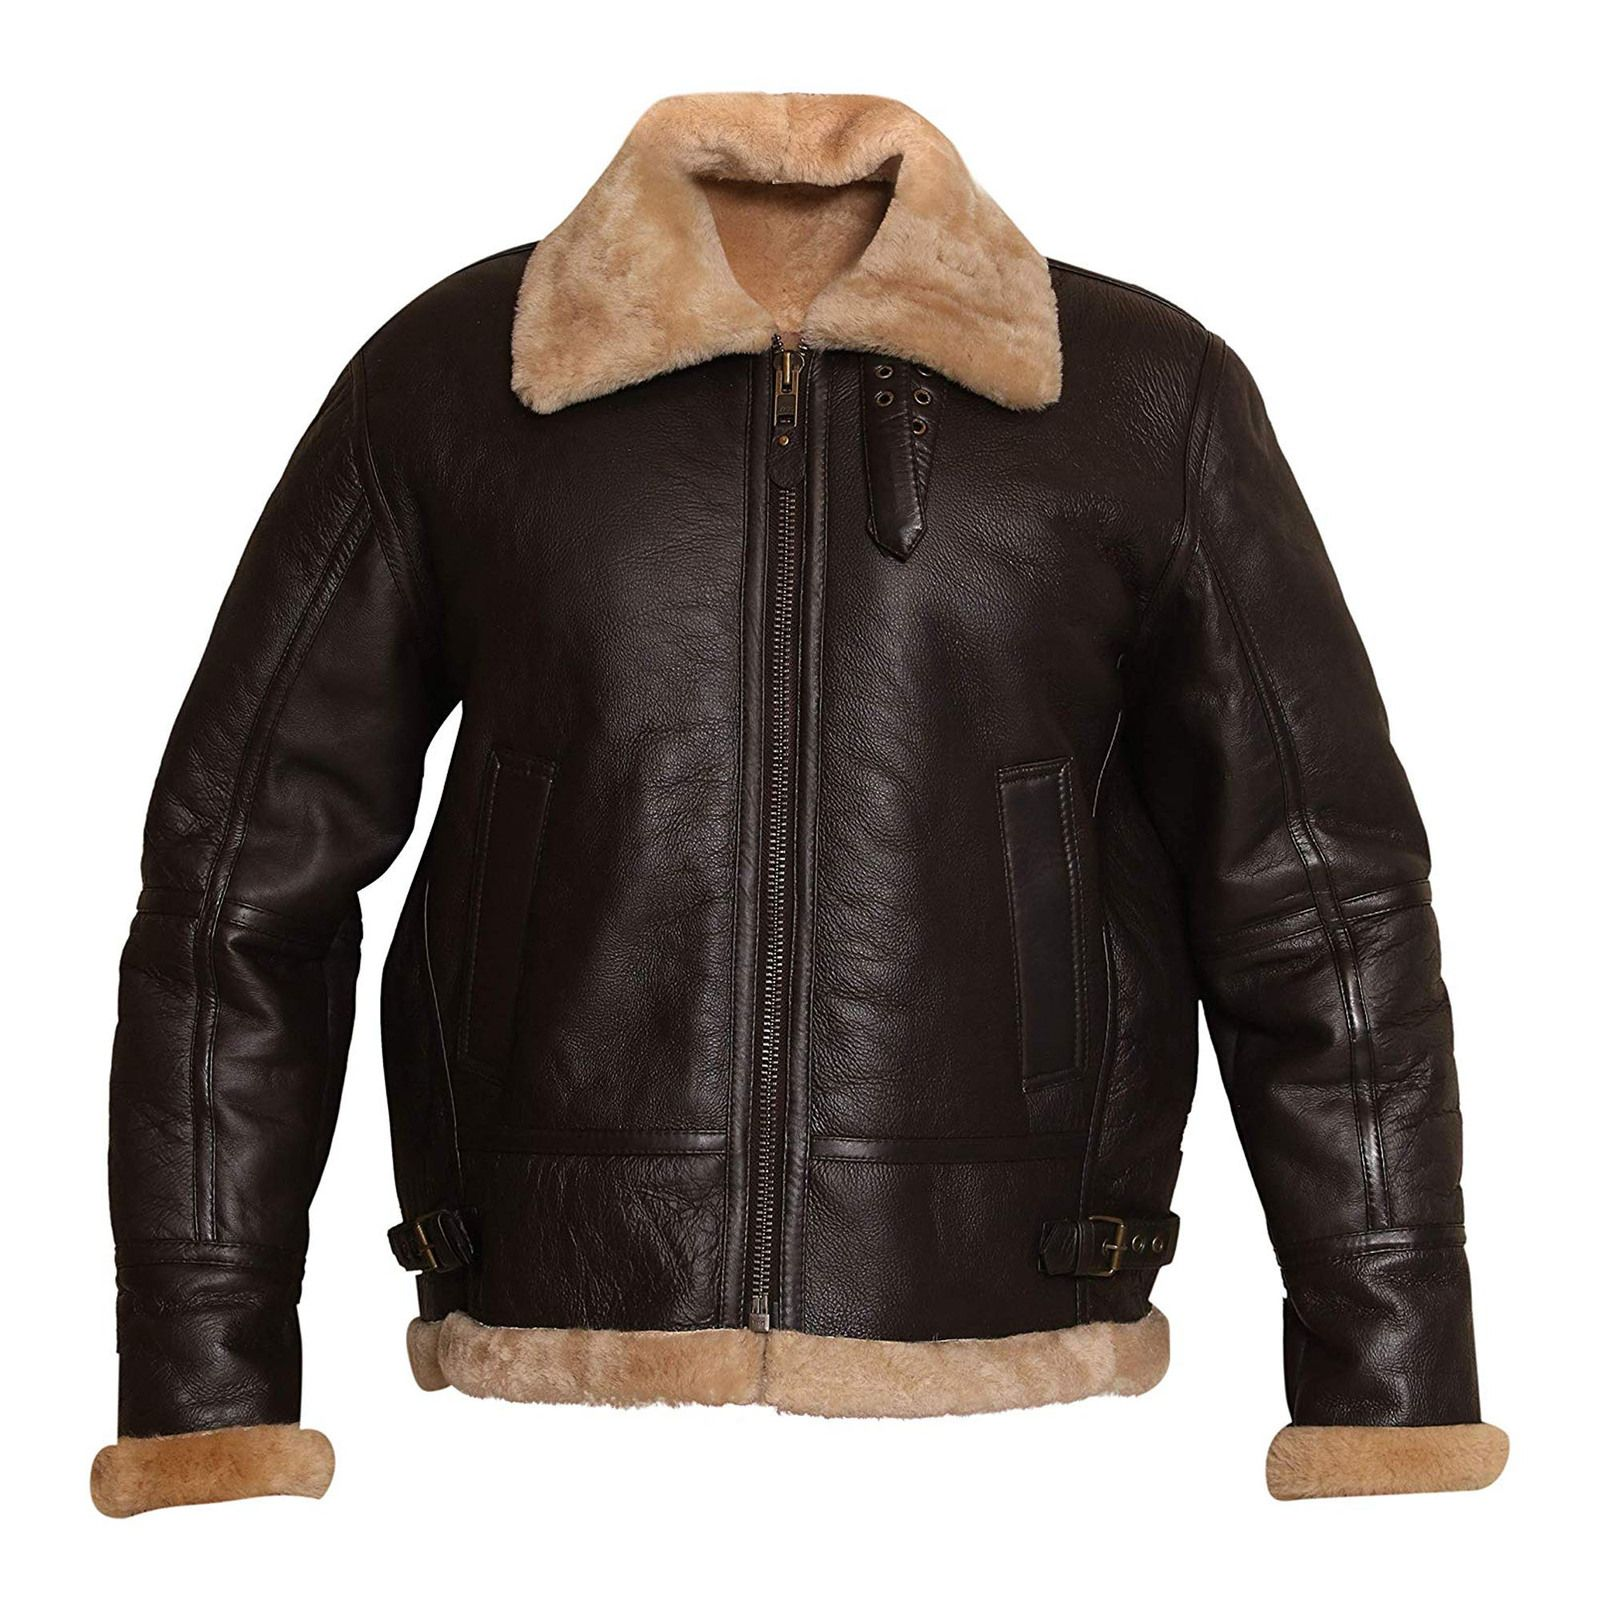 Goldenleathers Booth At Bonanza In 2021 Leather Bomber Jacket Flight Bomber Jacket Flying Jacket [ 1600 x 1600 Pixel ]